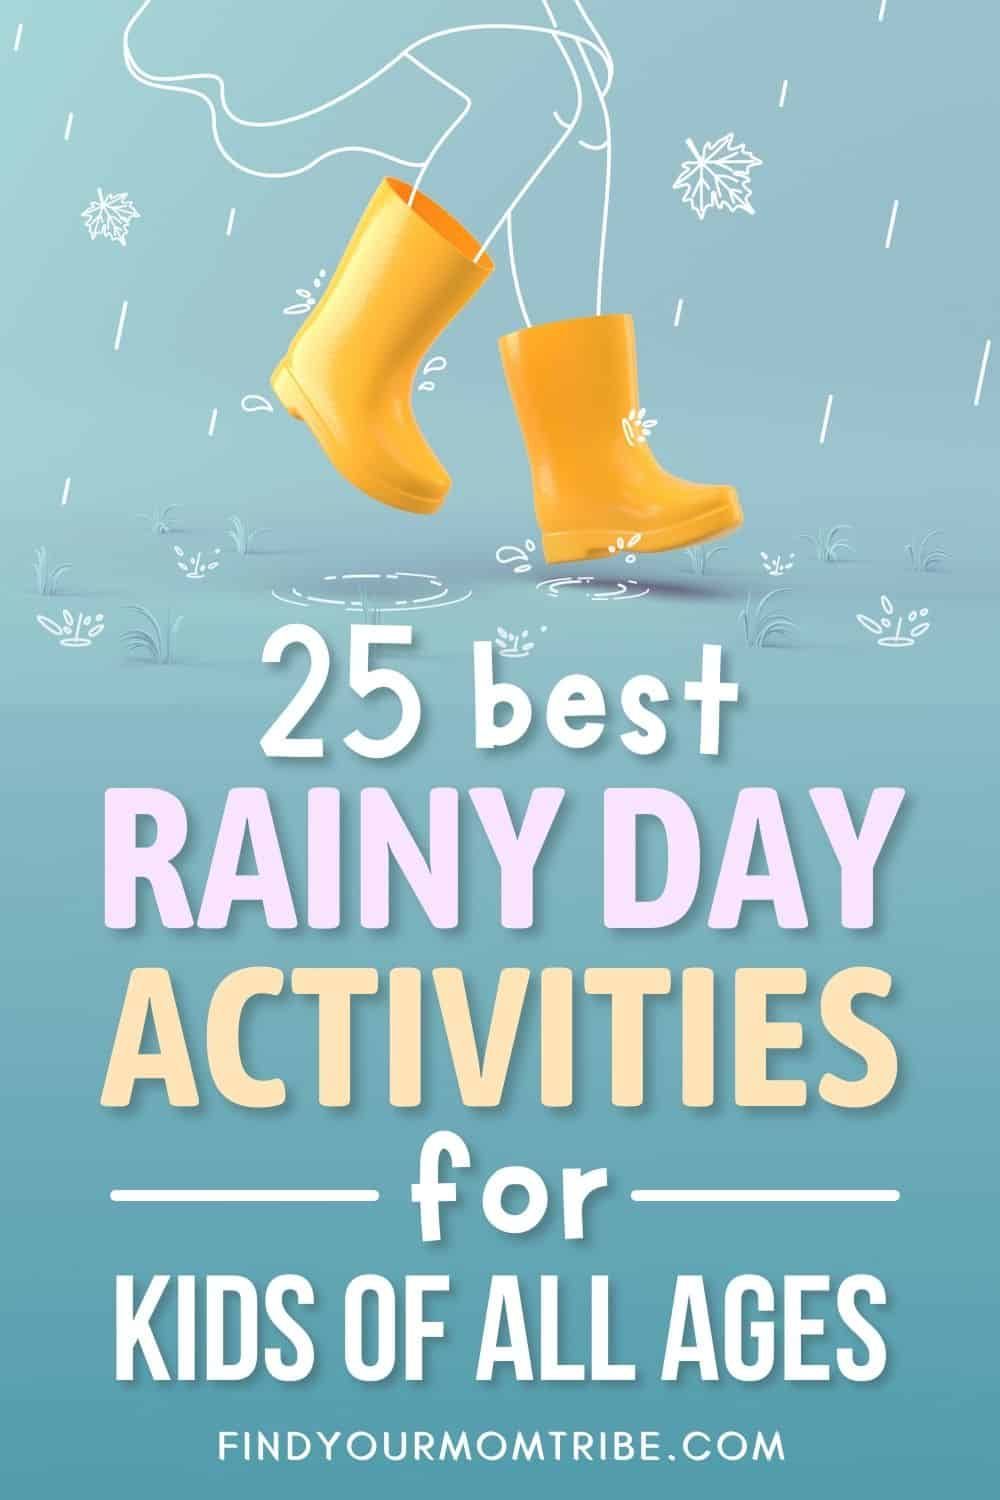 25 Best Rainy Day Activities For Kids Of All Ages Pinterest